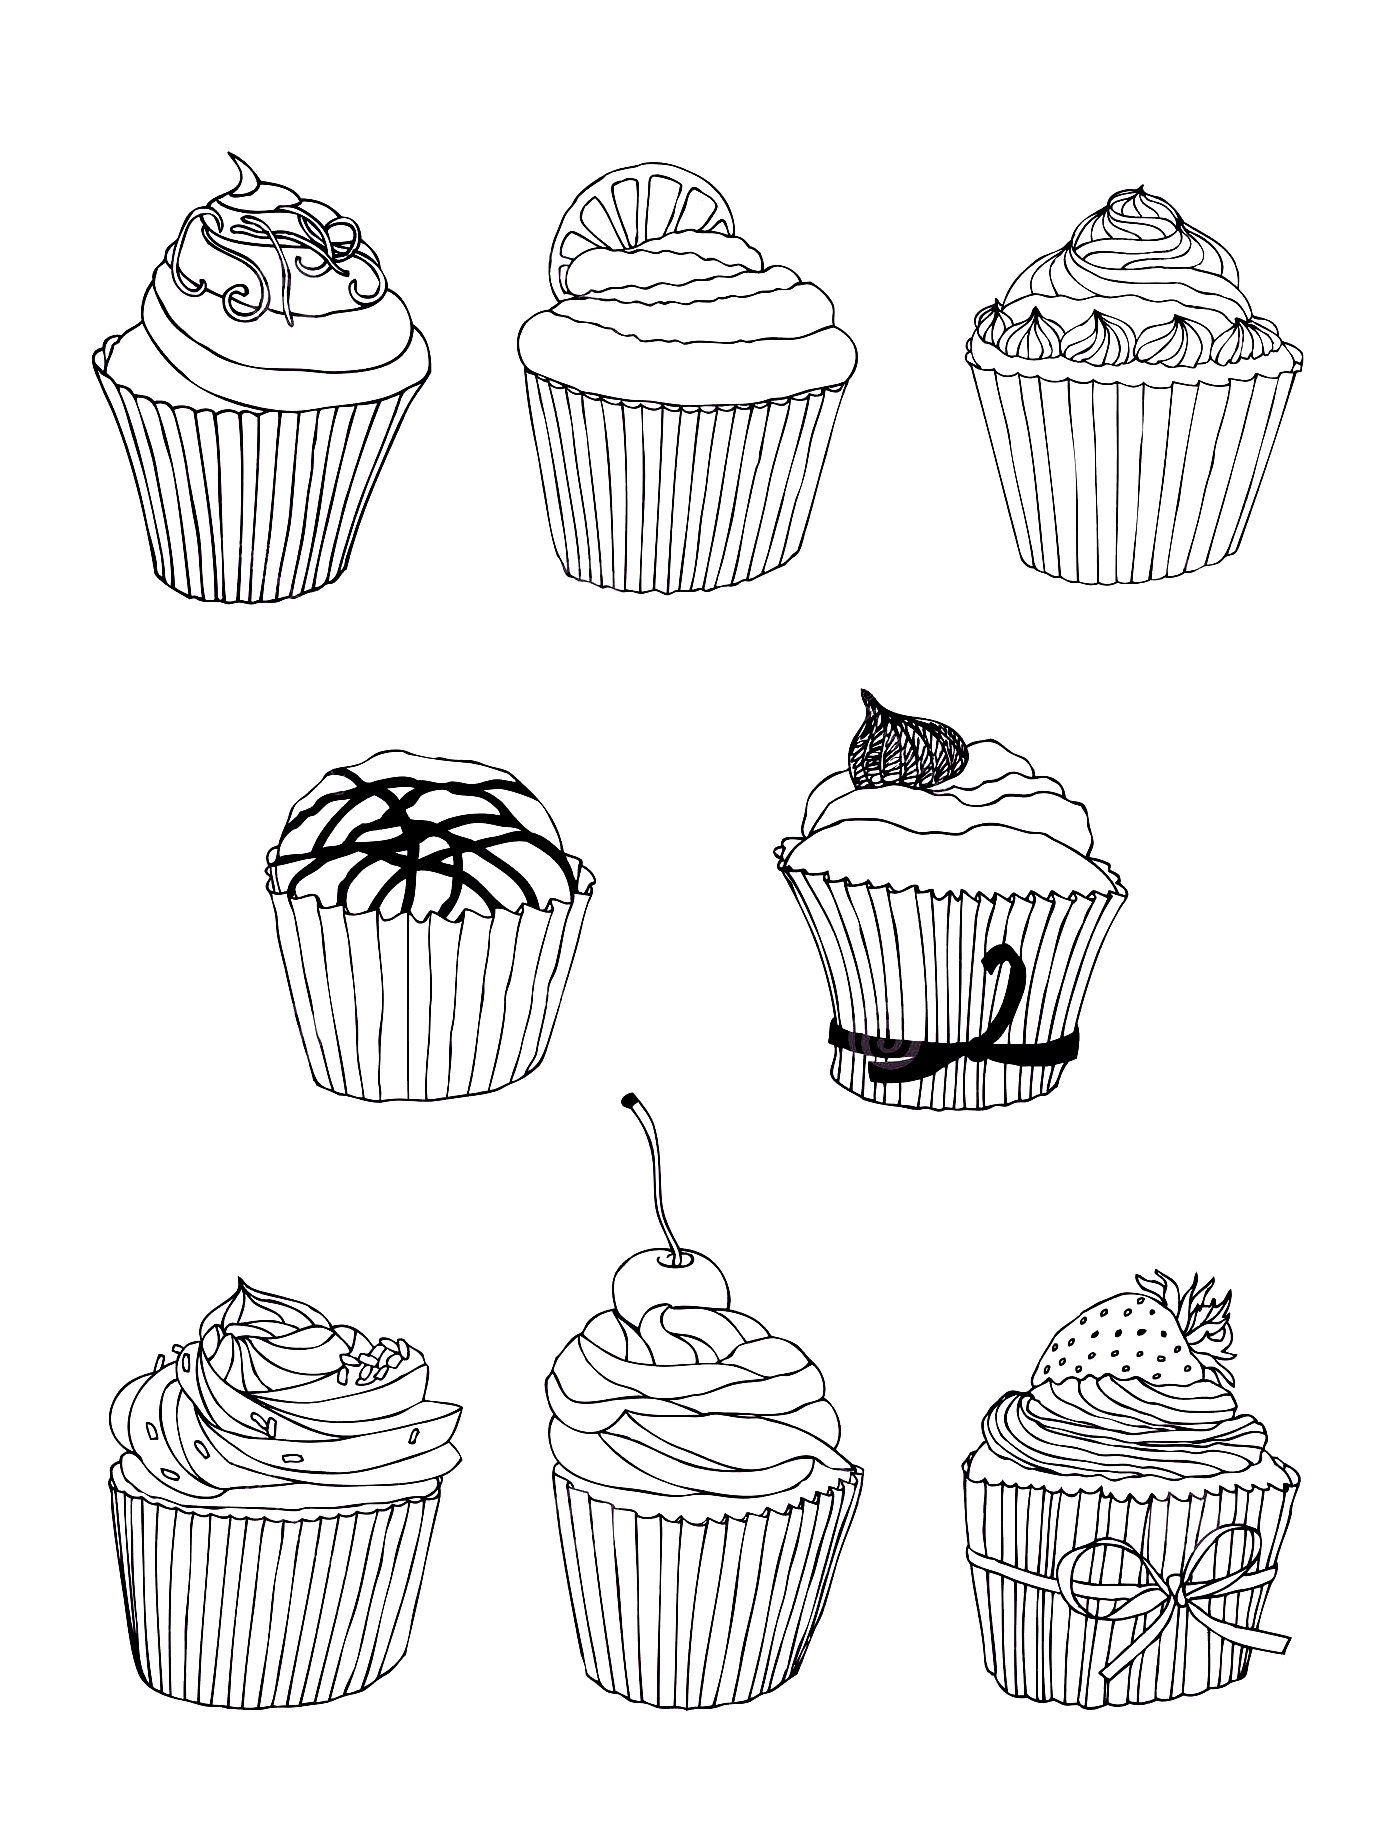 Cup cakes 41187